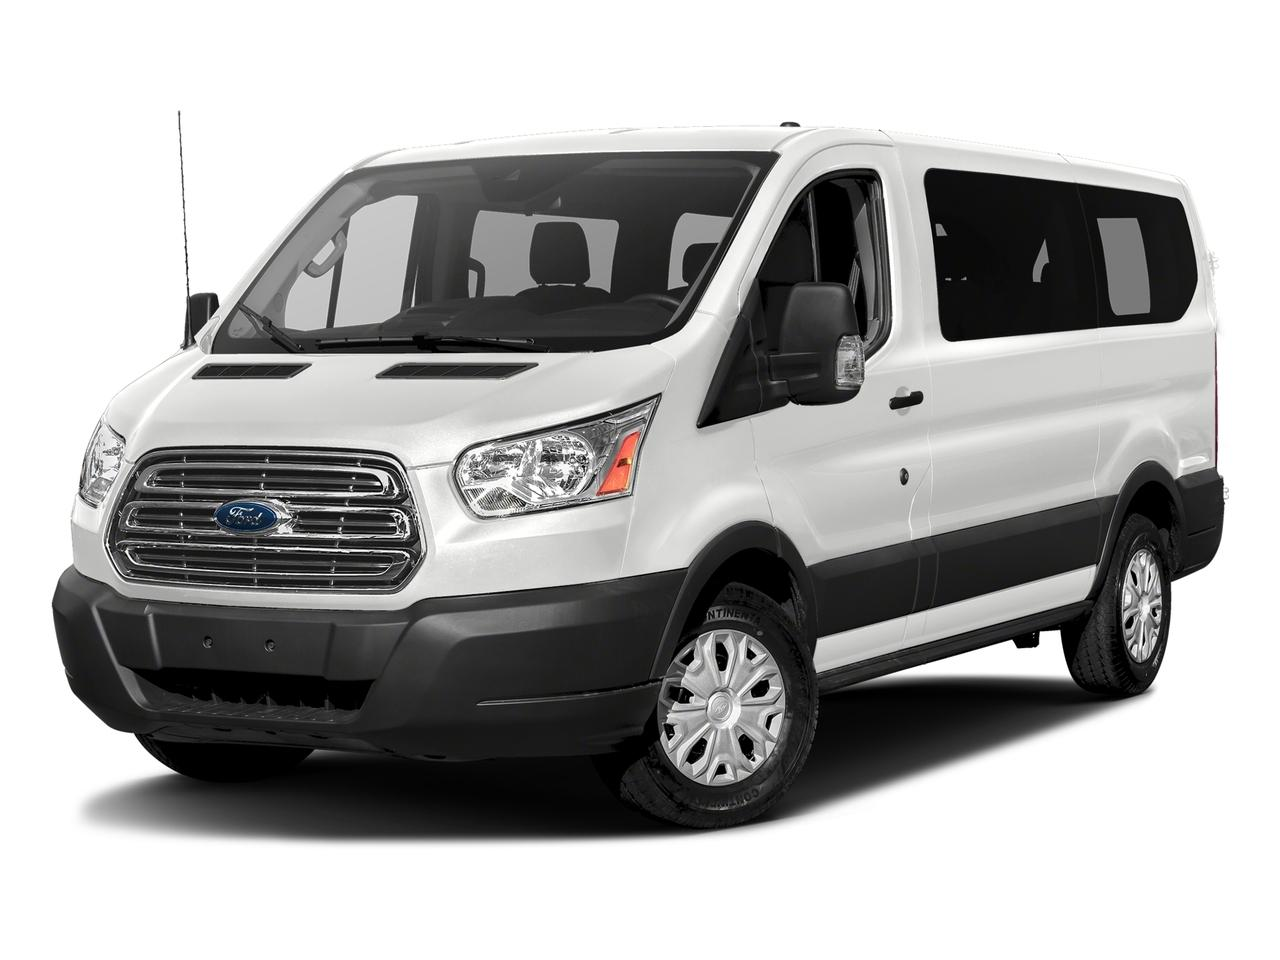 2017 Ford Transit Wagon Vehicle Photo in Peoria, IL 61615